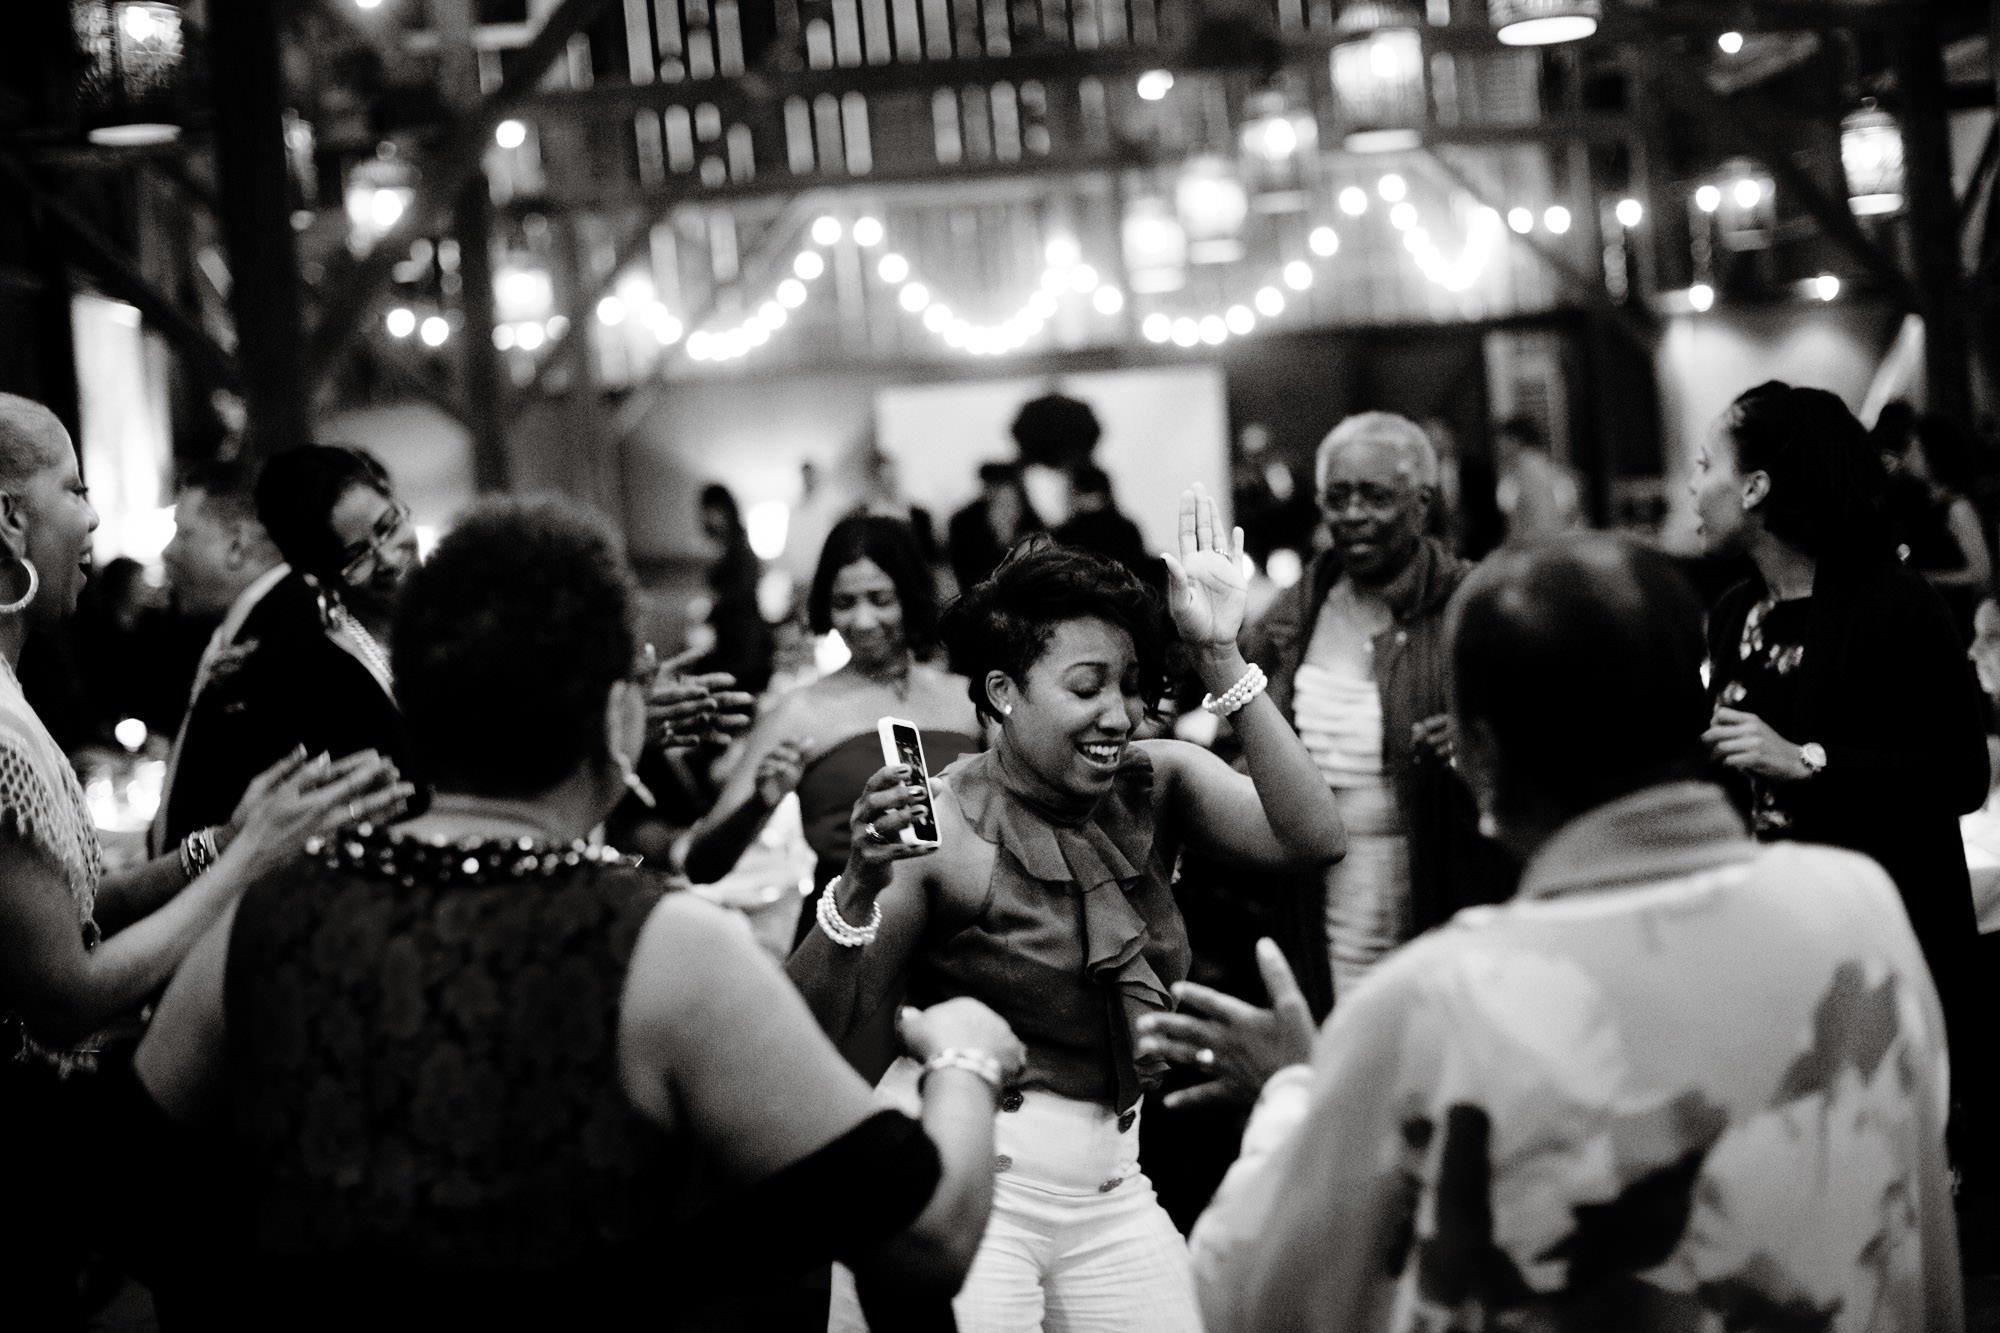 Guests enjoy the wedding reception by dancing.